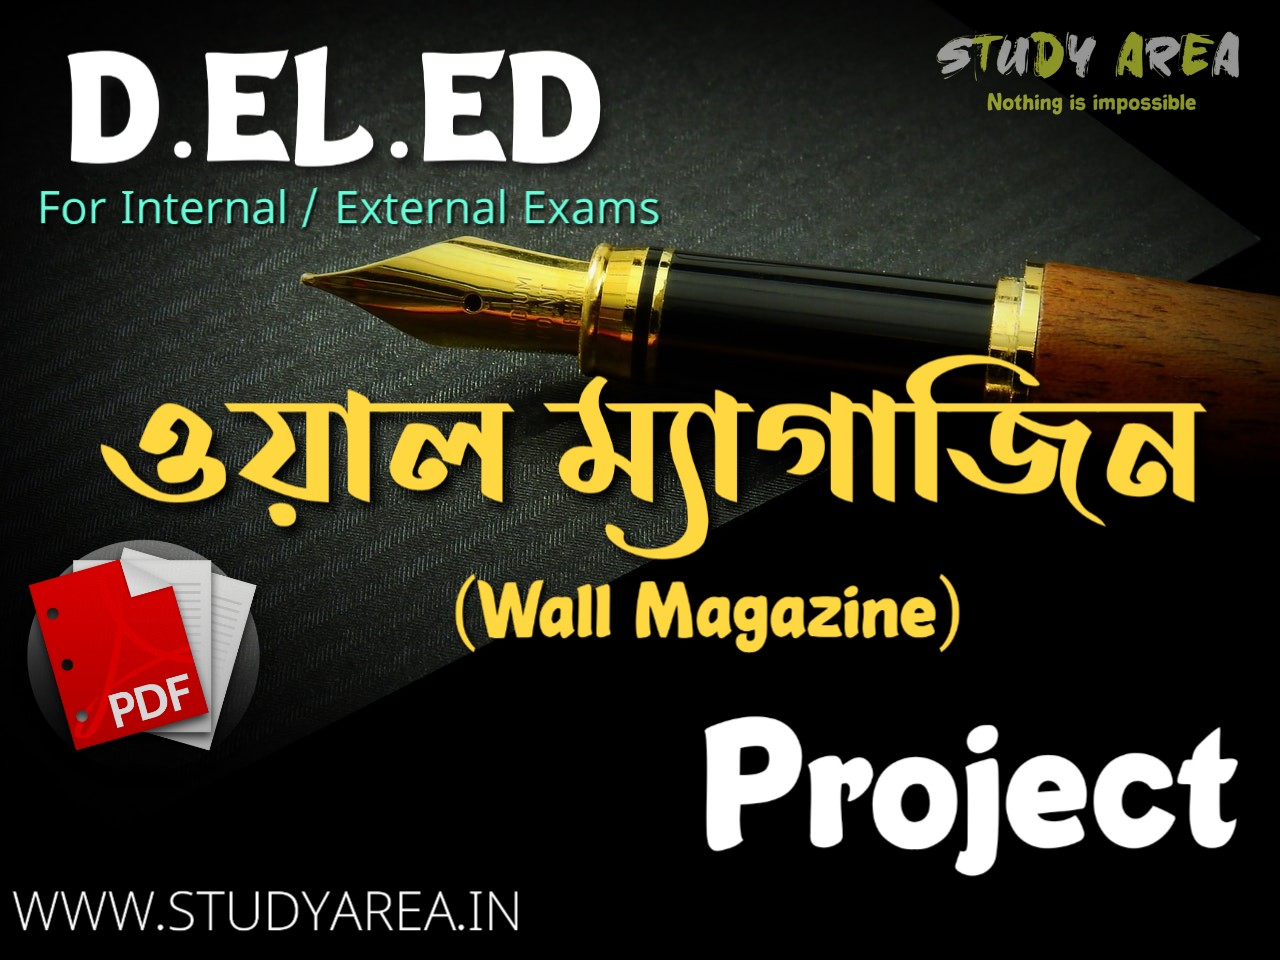 D.EL.ED Wall Magazine Project Works For Internal / External Exams